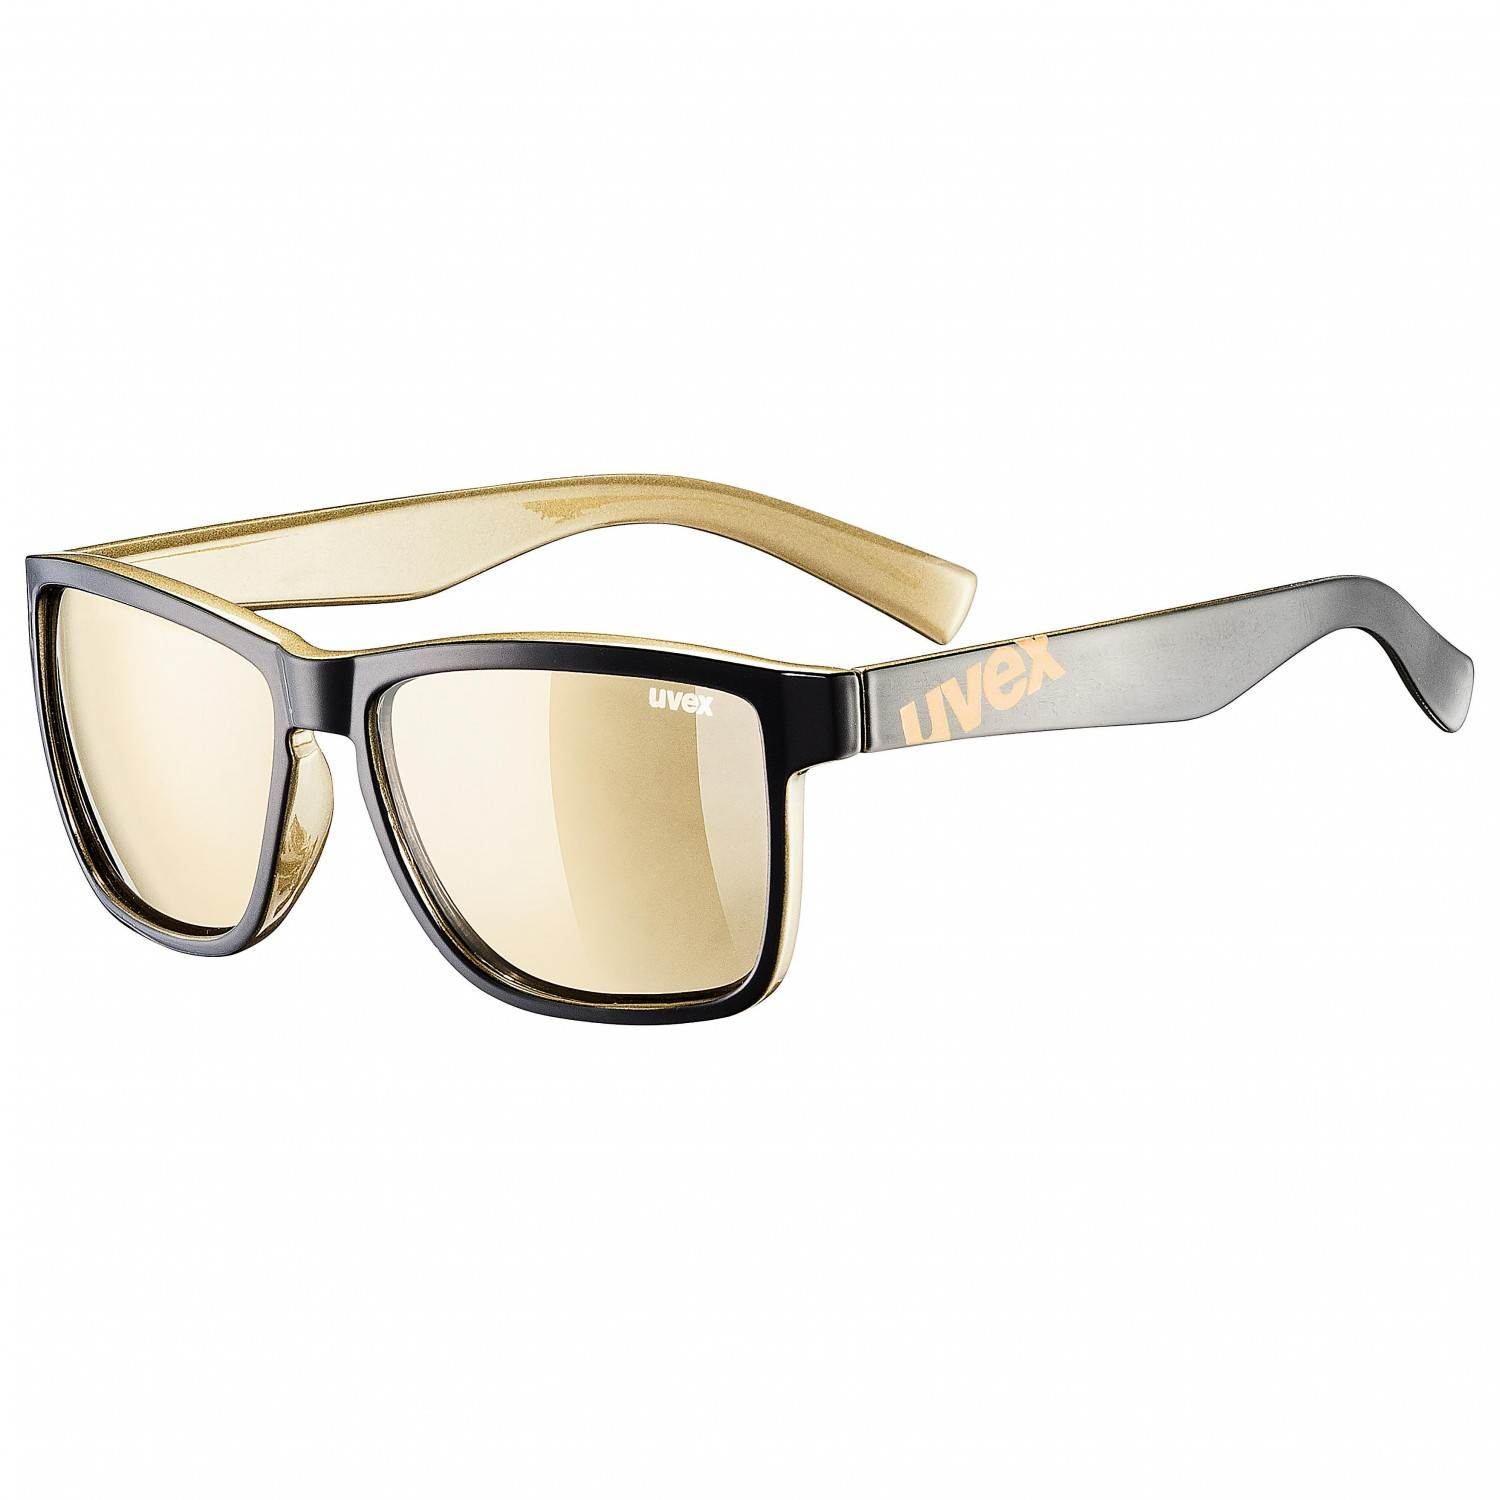 uvex-lgl-39-sonnenbrille-farbe-9916-black-gold-mirror-gold-s3-